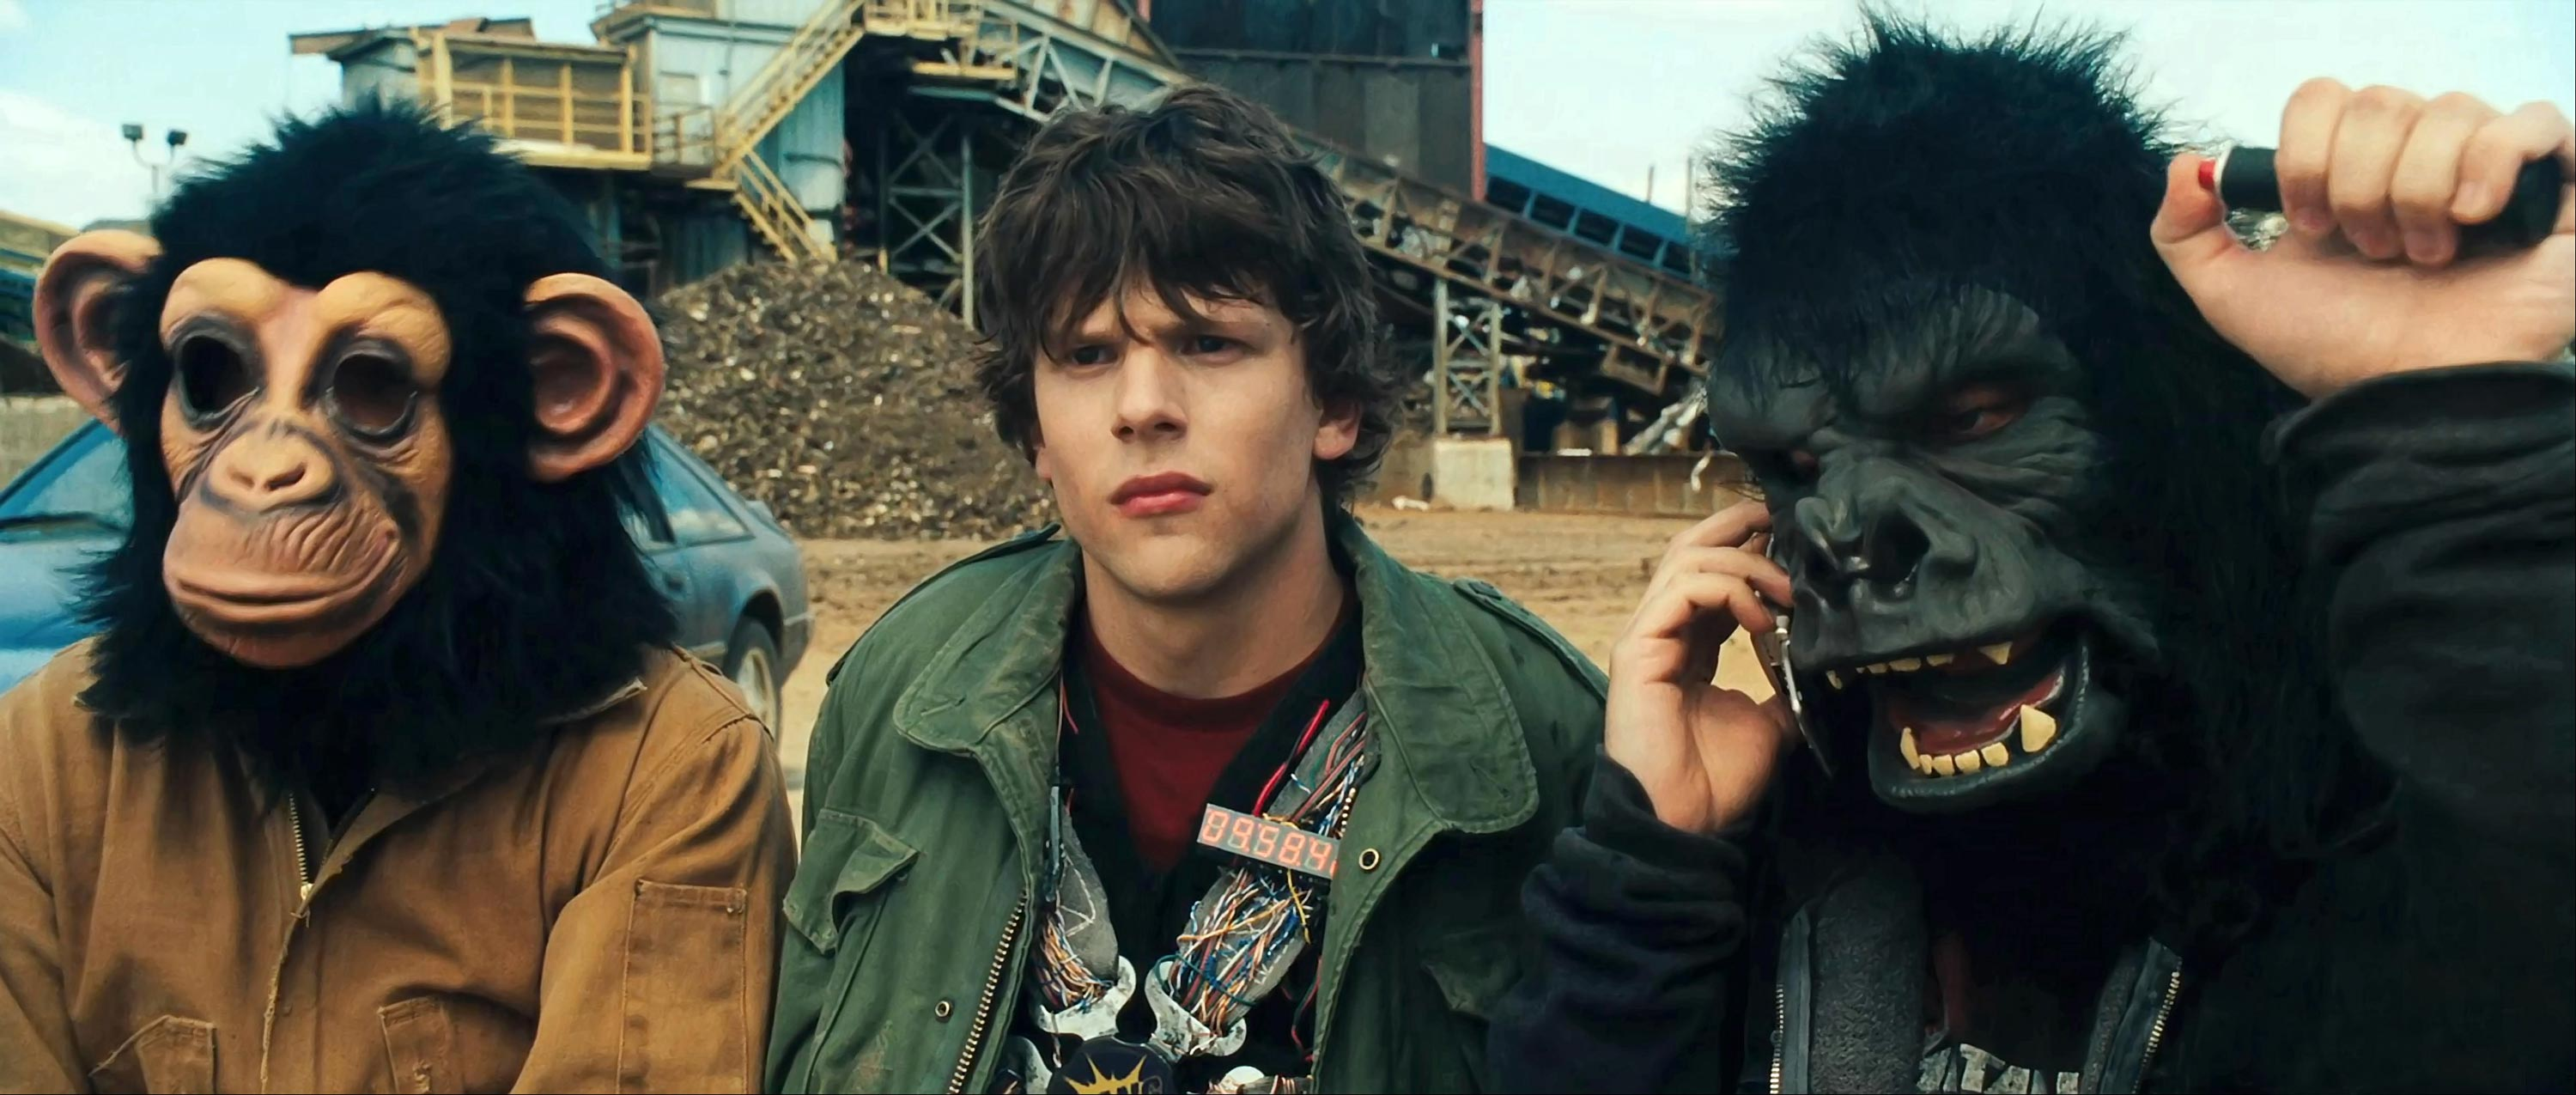 Jesse Eisenberg as Nick in 30 Minutes or Less